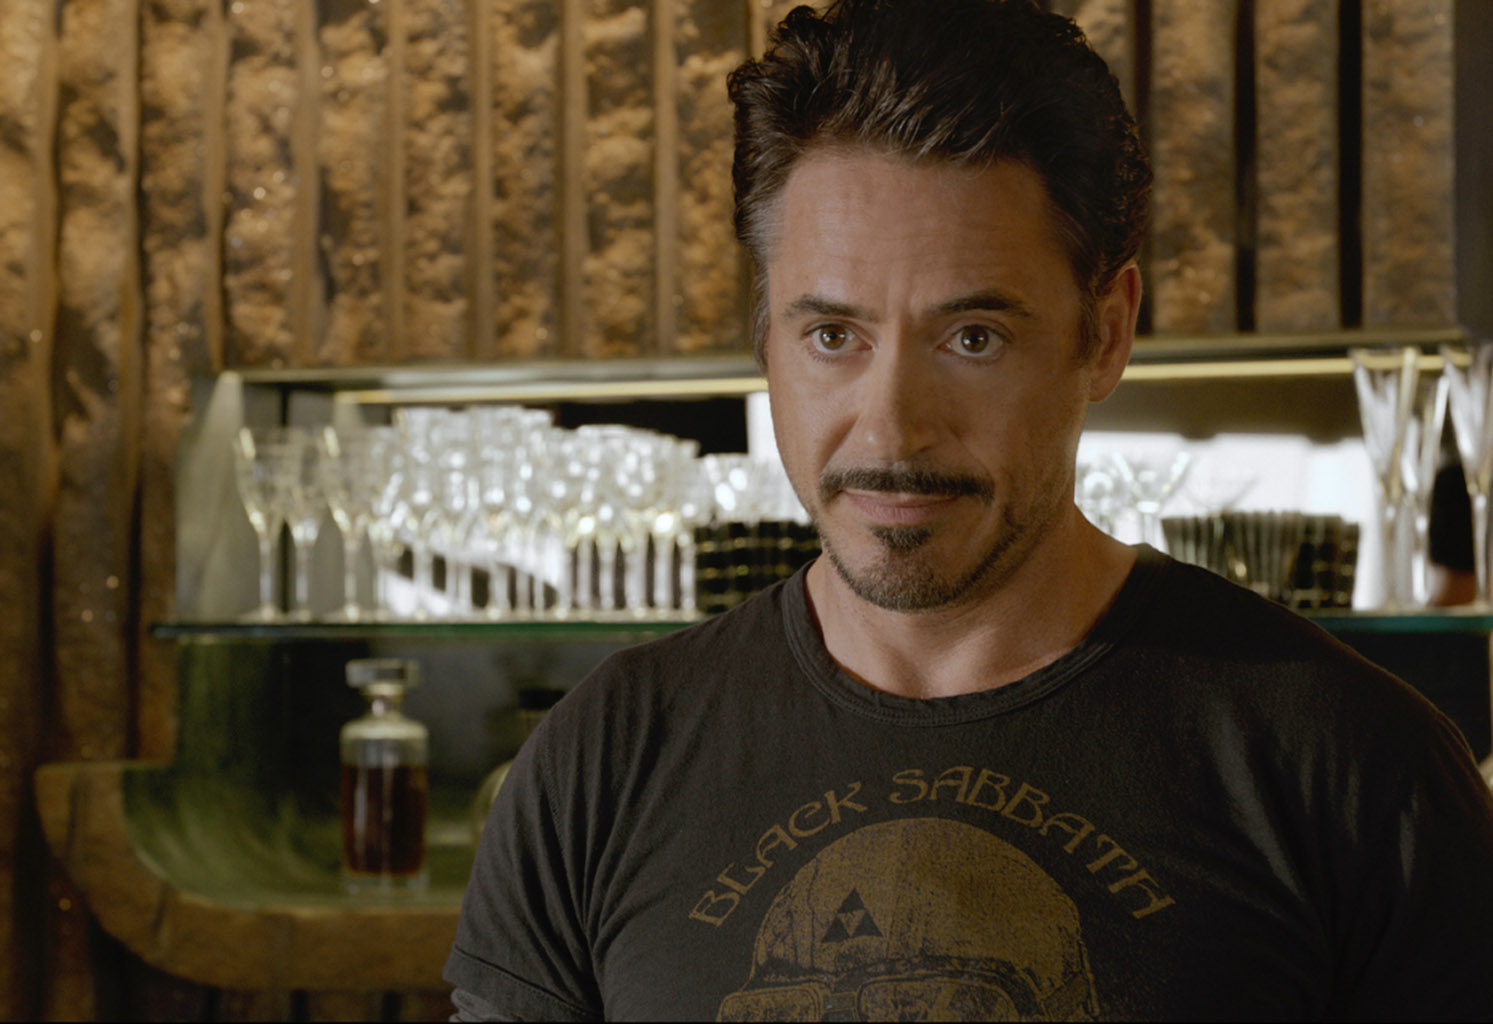 Black sabbath t shirt avengers - Avengers Tony Stark In A Black Sabbath T Shirt Courtesy Marvel Darthmaz314